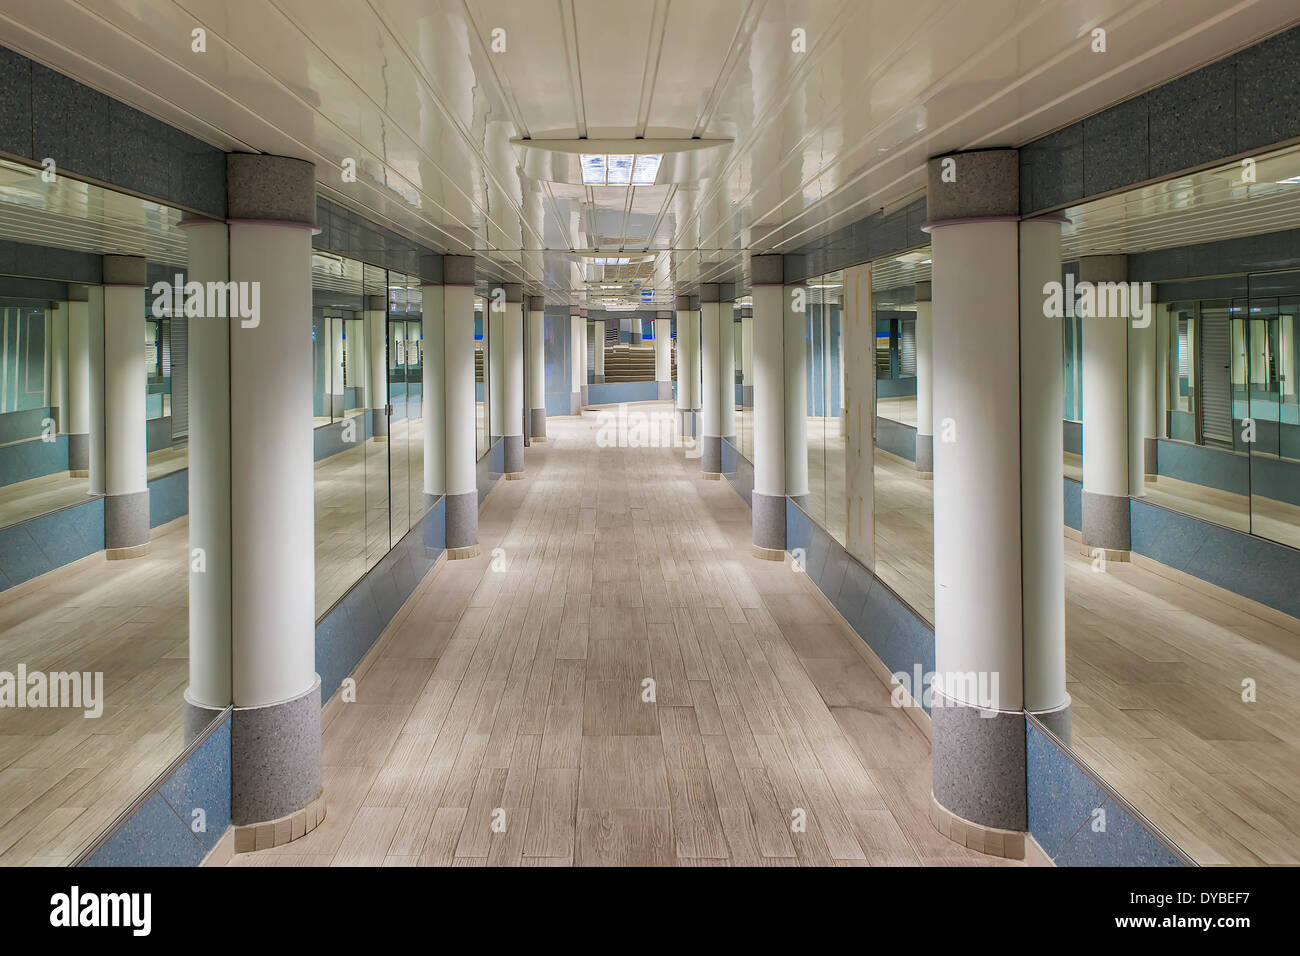 View of modern underground pedestrian passage with mirrors on walls in Monte Carlo, Monaco. - Stock Image